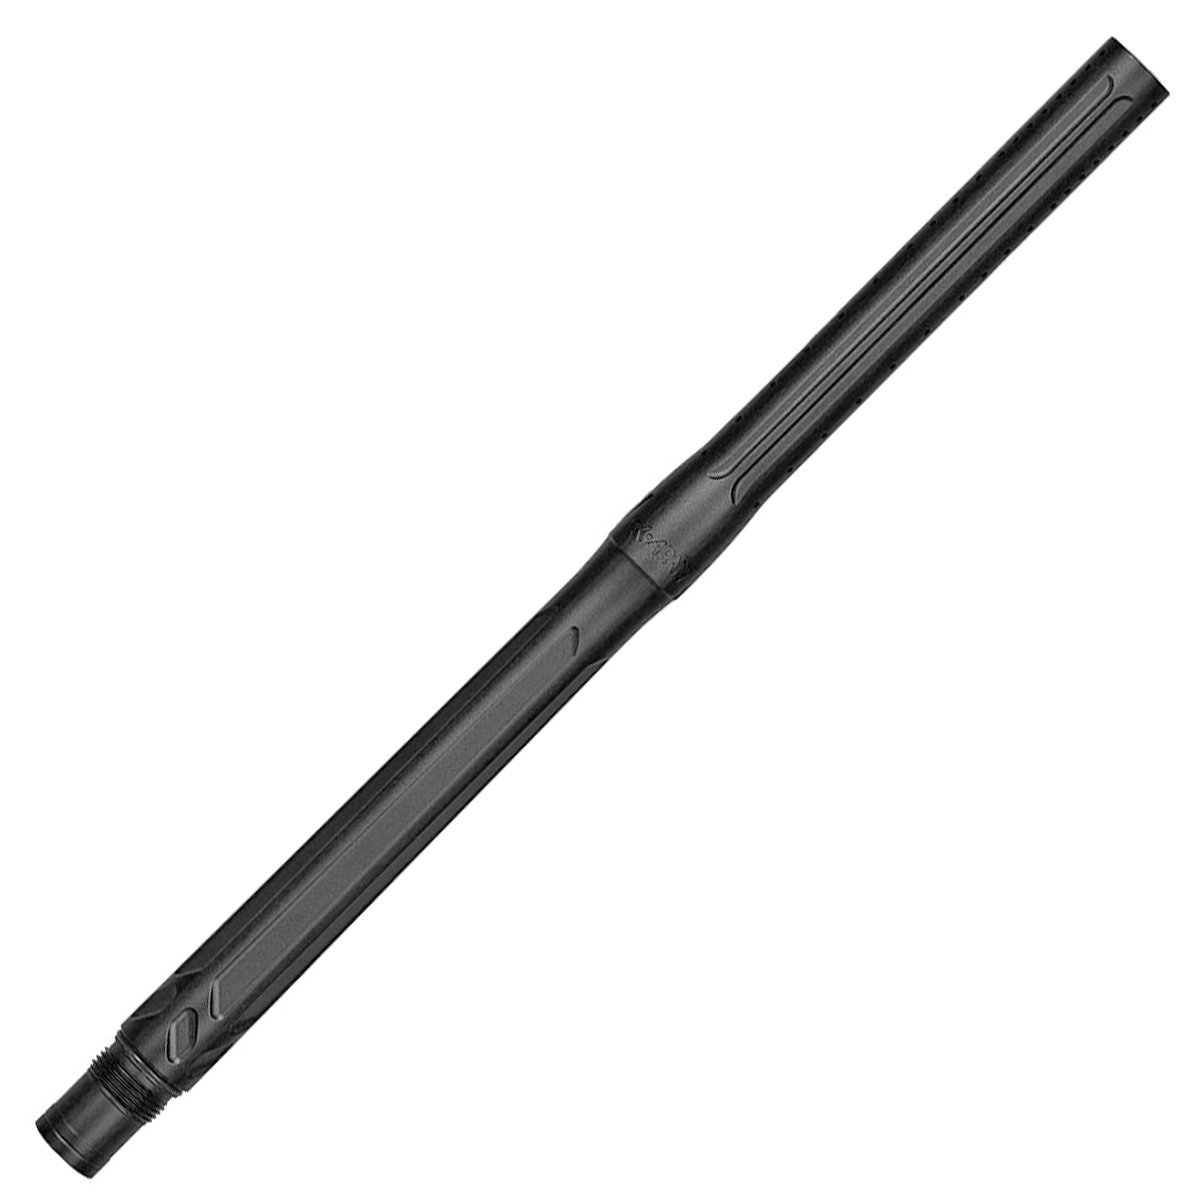 View larger image of HK Army XV One-Piece Paintball Gun Barrel - A5 Thread